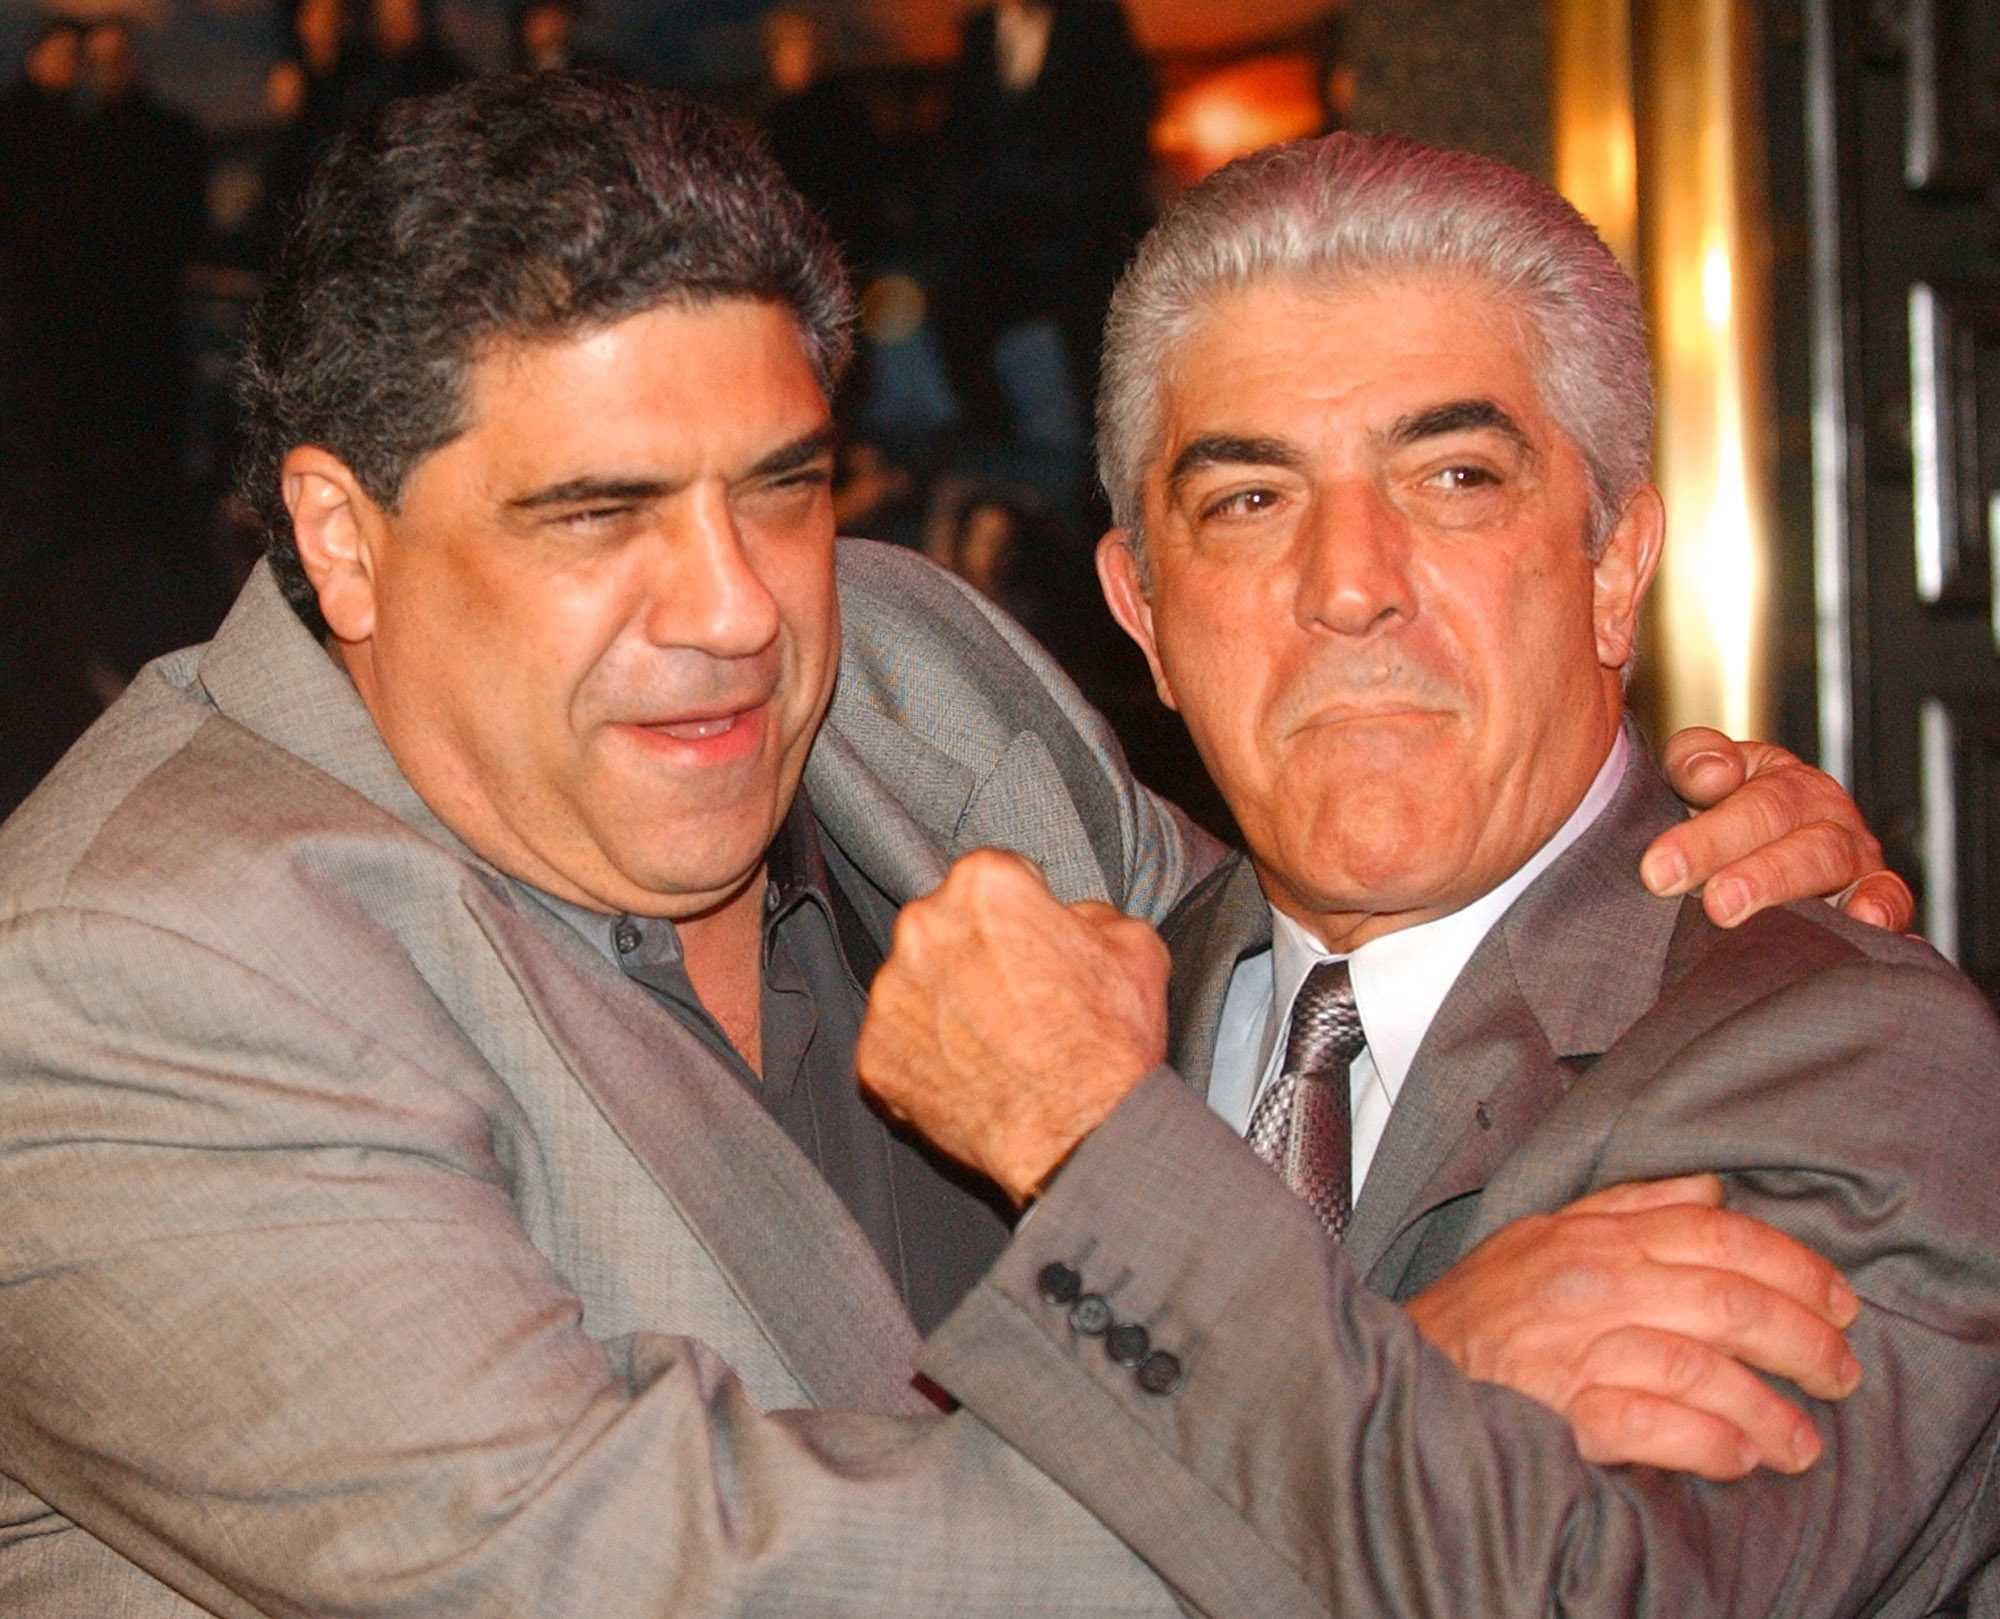 Frank Vincent died on Wednesday at the age of 78. He's